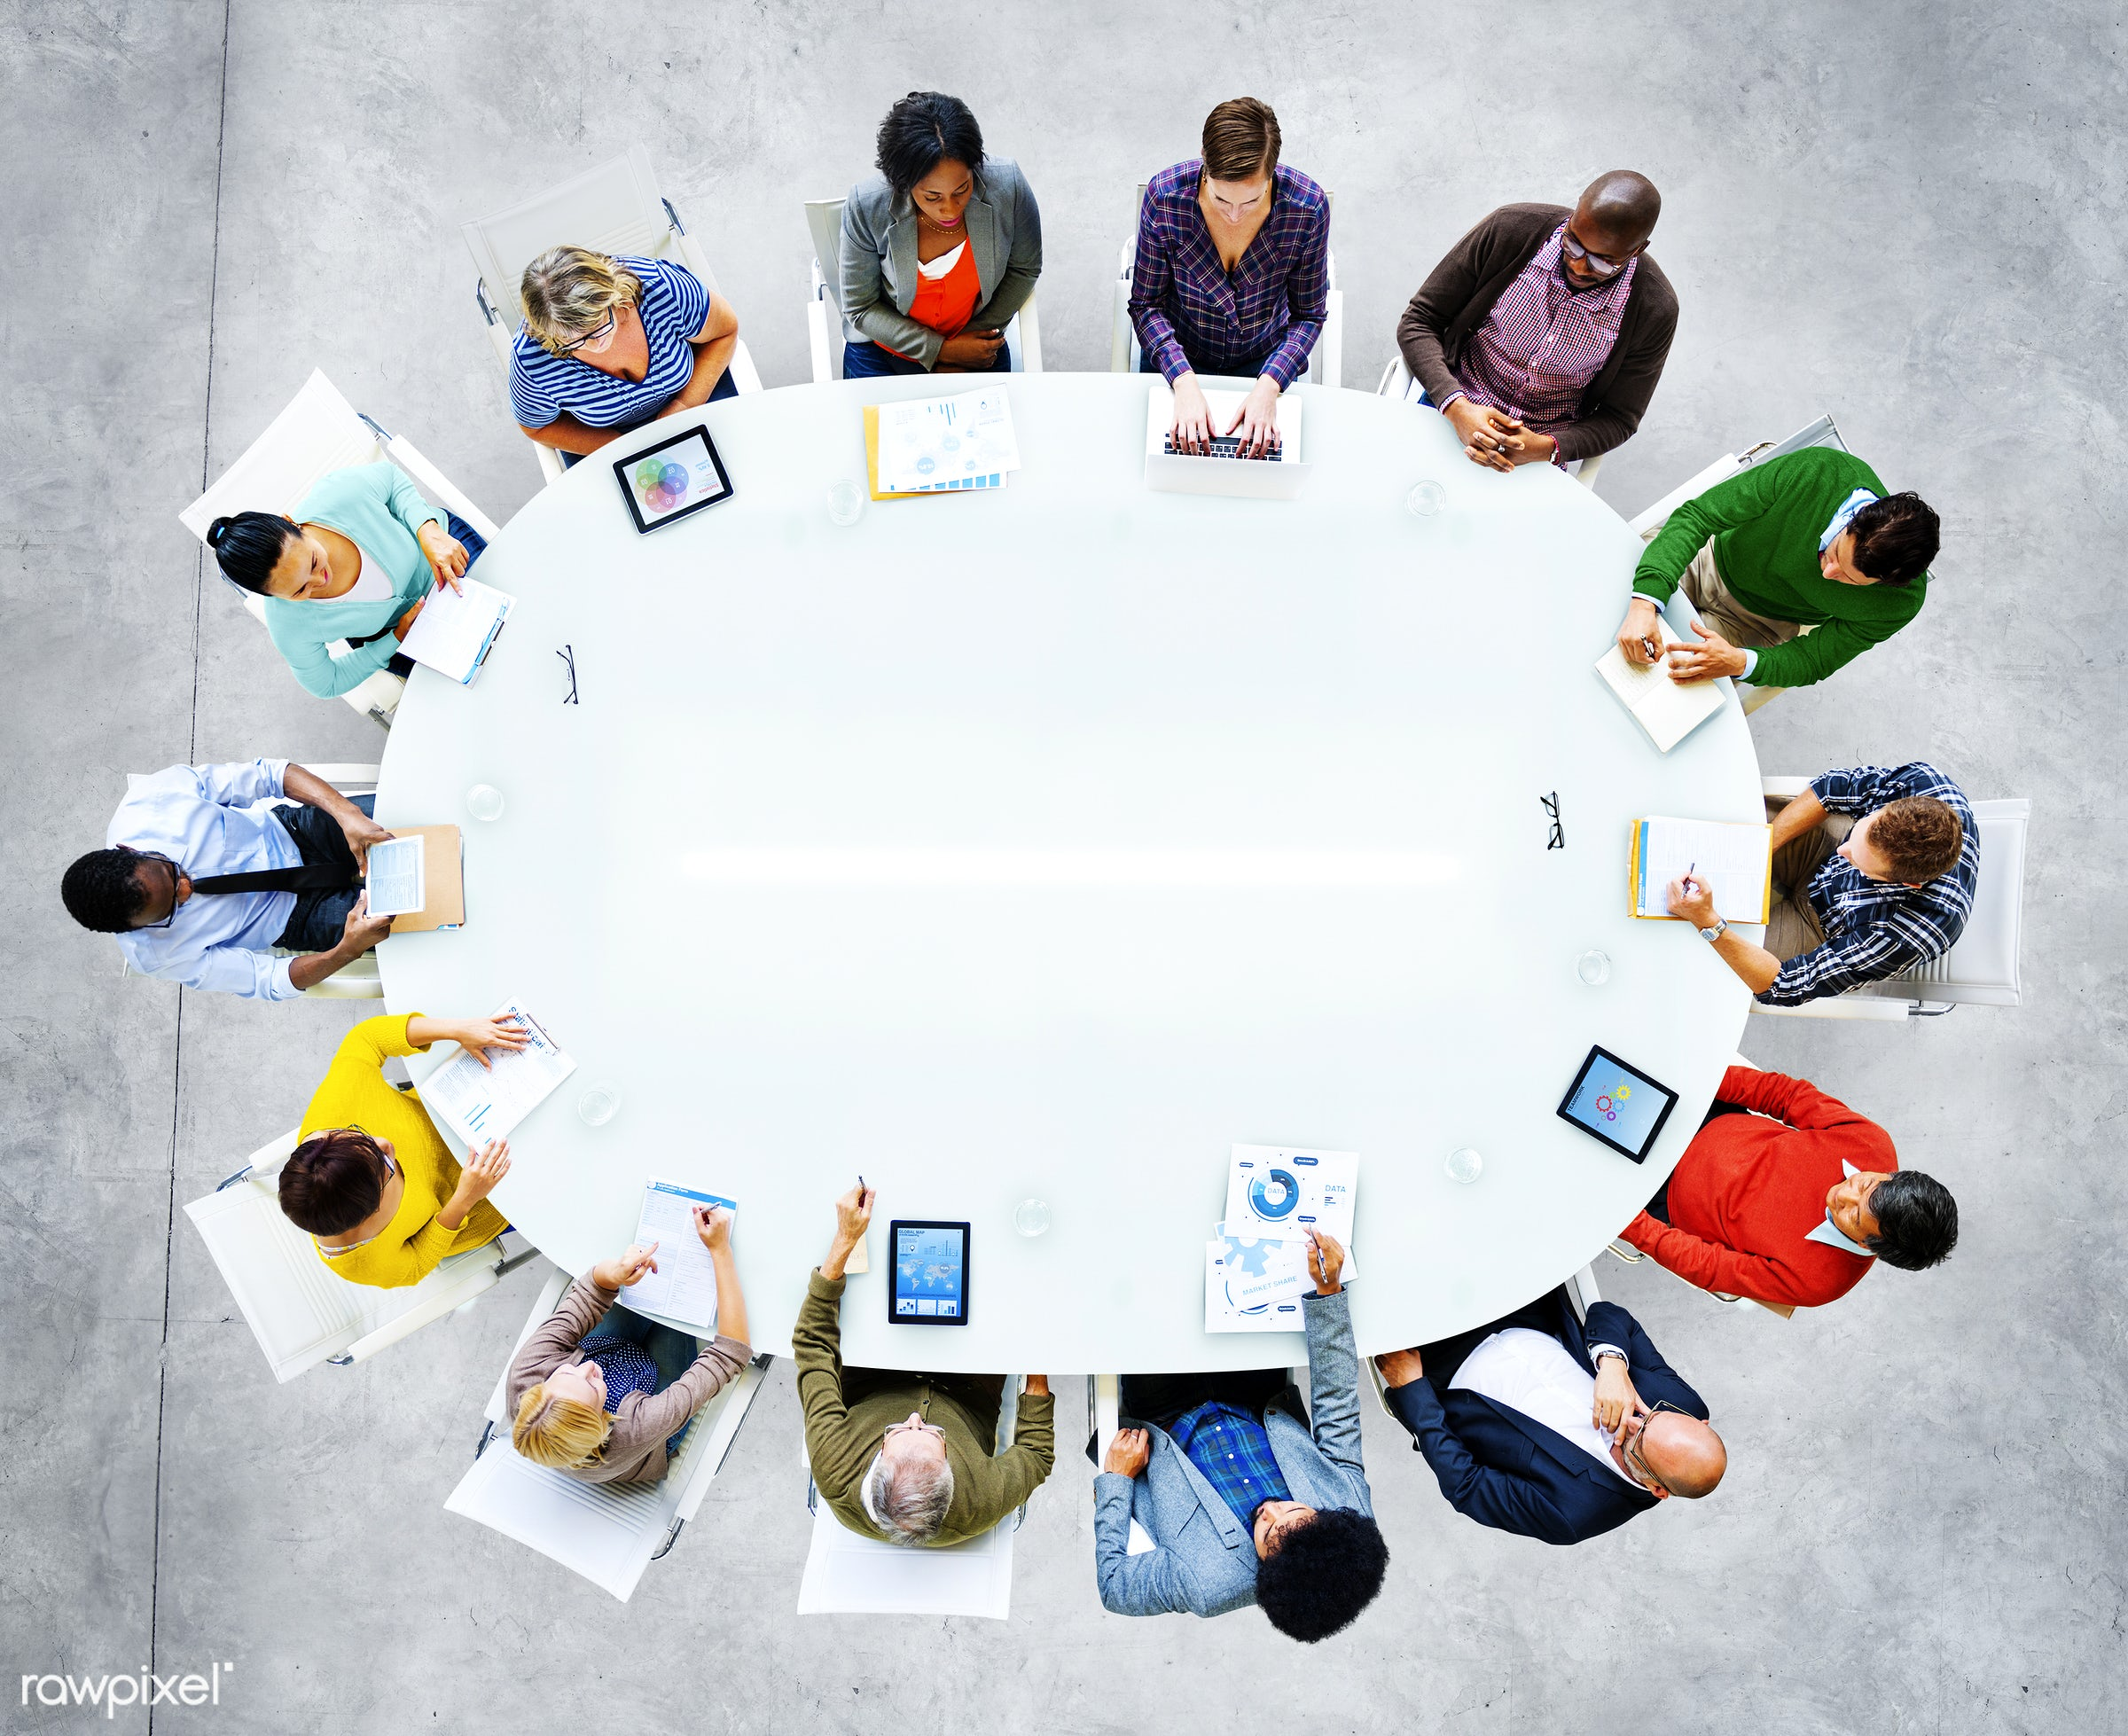 aerial view, architecture, backdrop, background, board room, brainstorming, business, business people, closeup, colorful,...